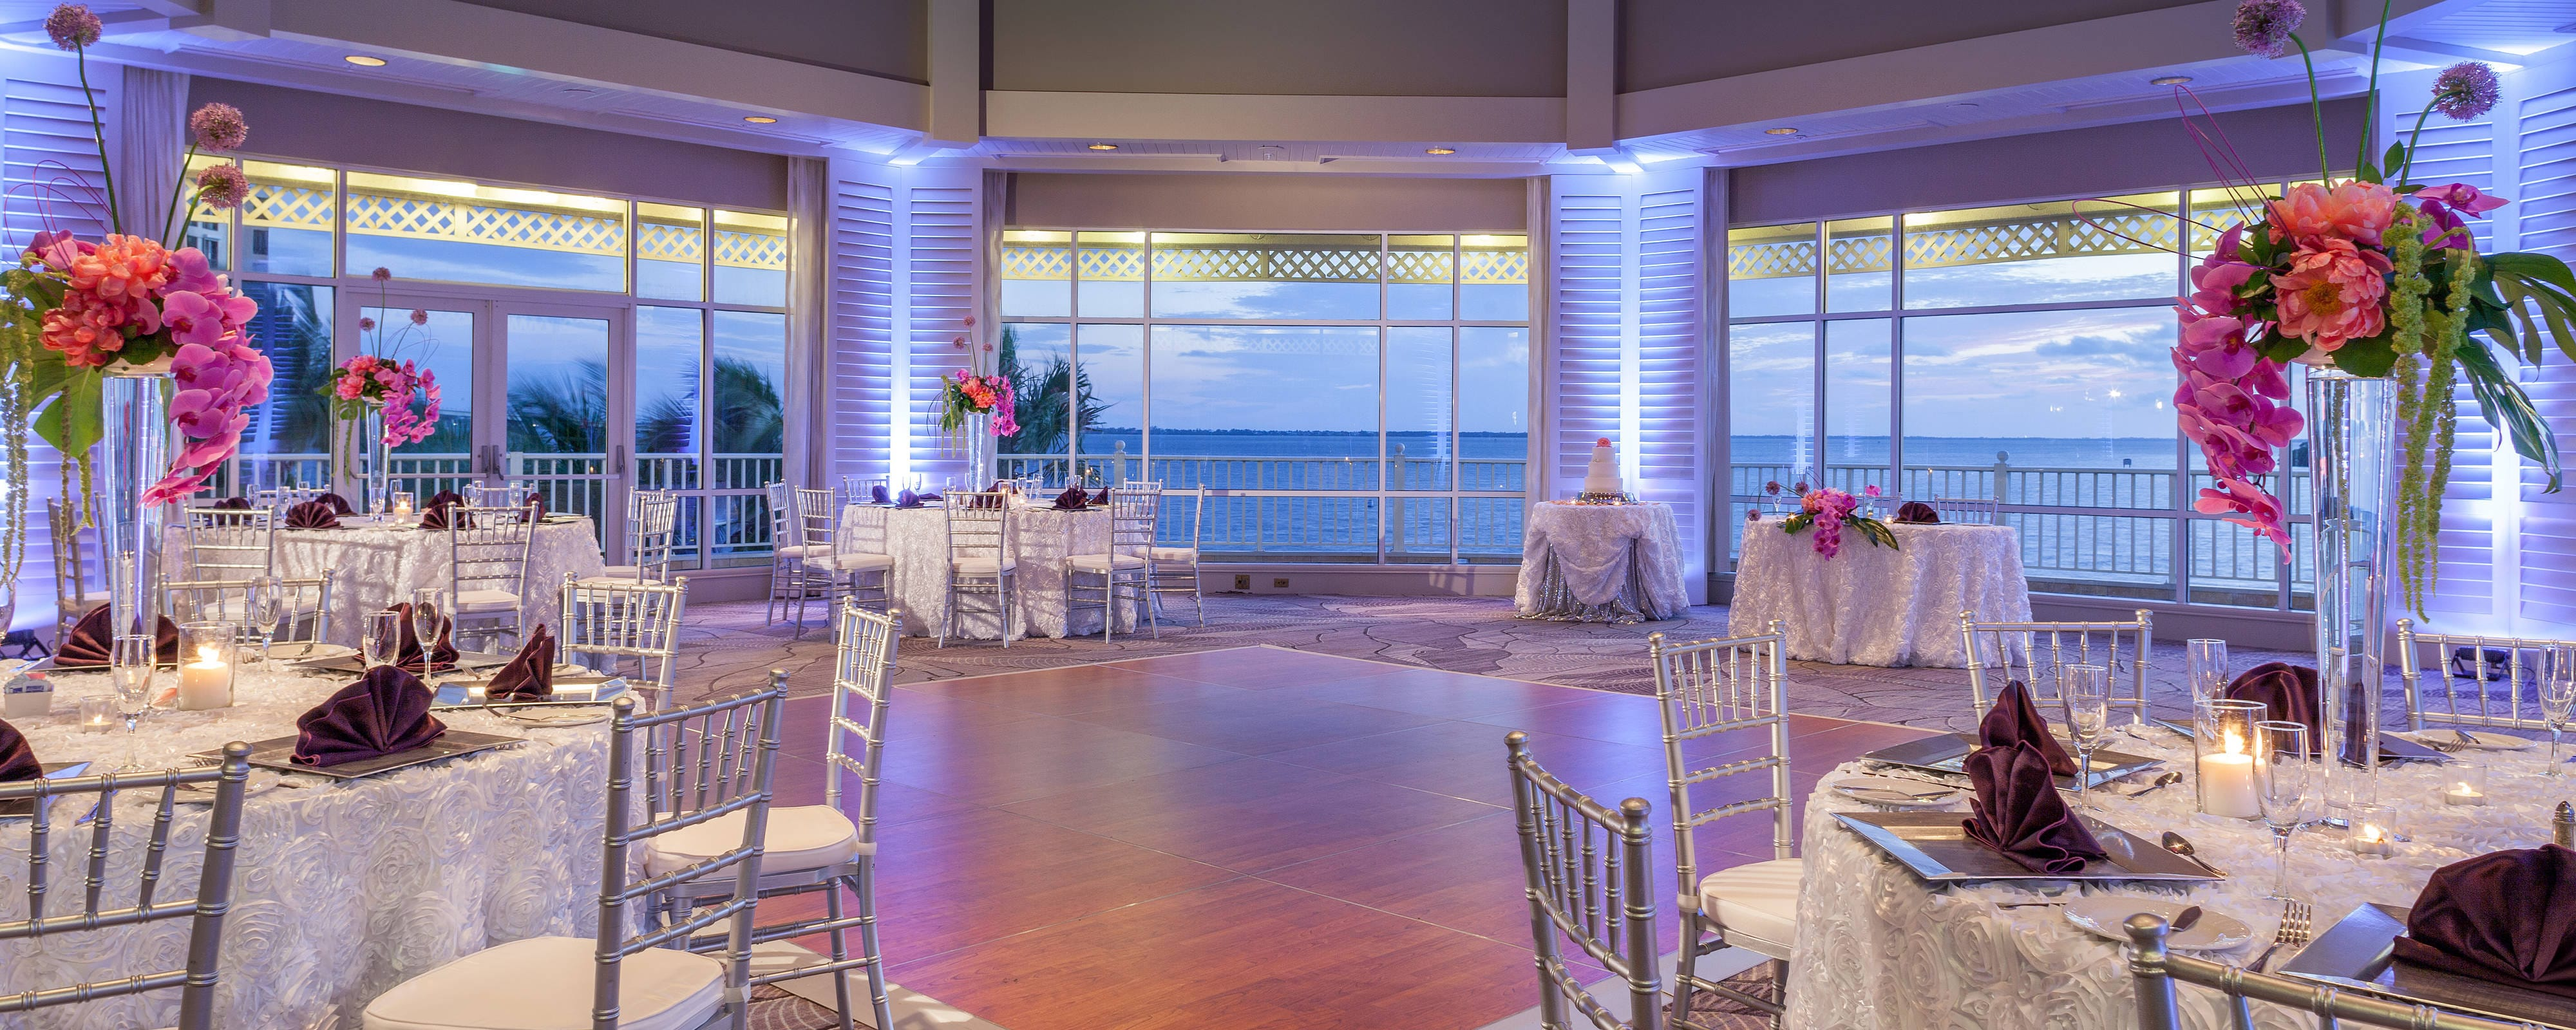 Fort Myers Florida Wedding Venues Sanibel Harbour Marriott Resort Spa